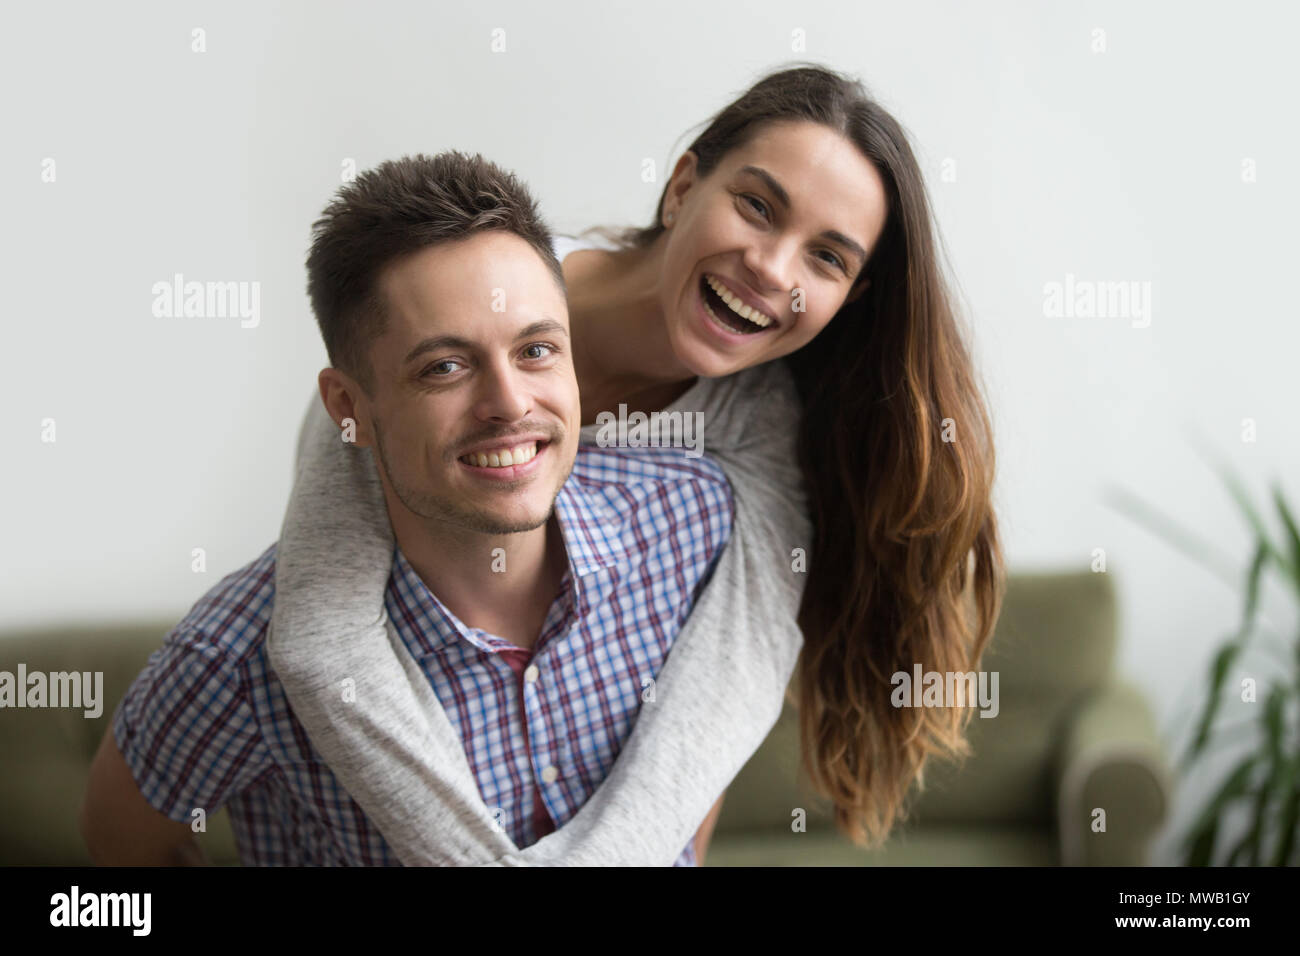 Smiling husband piggybacking cheerful wife at home, happy couple - Stock Image